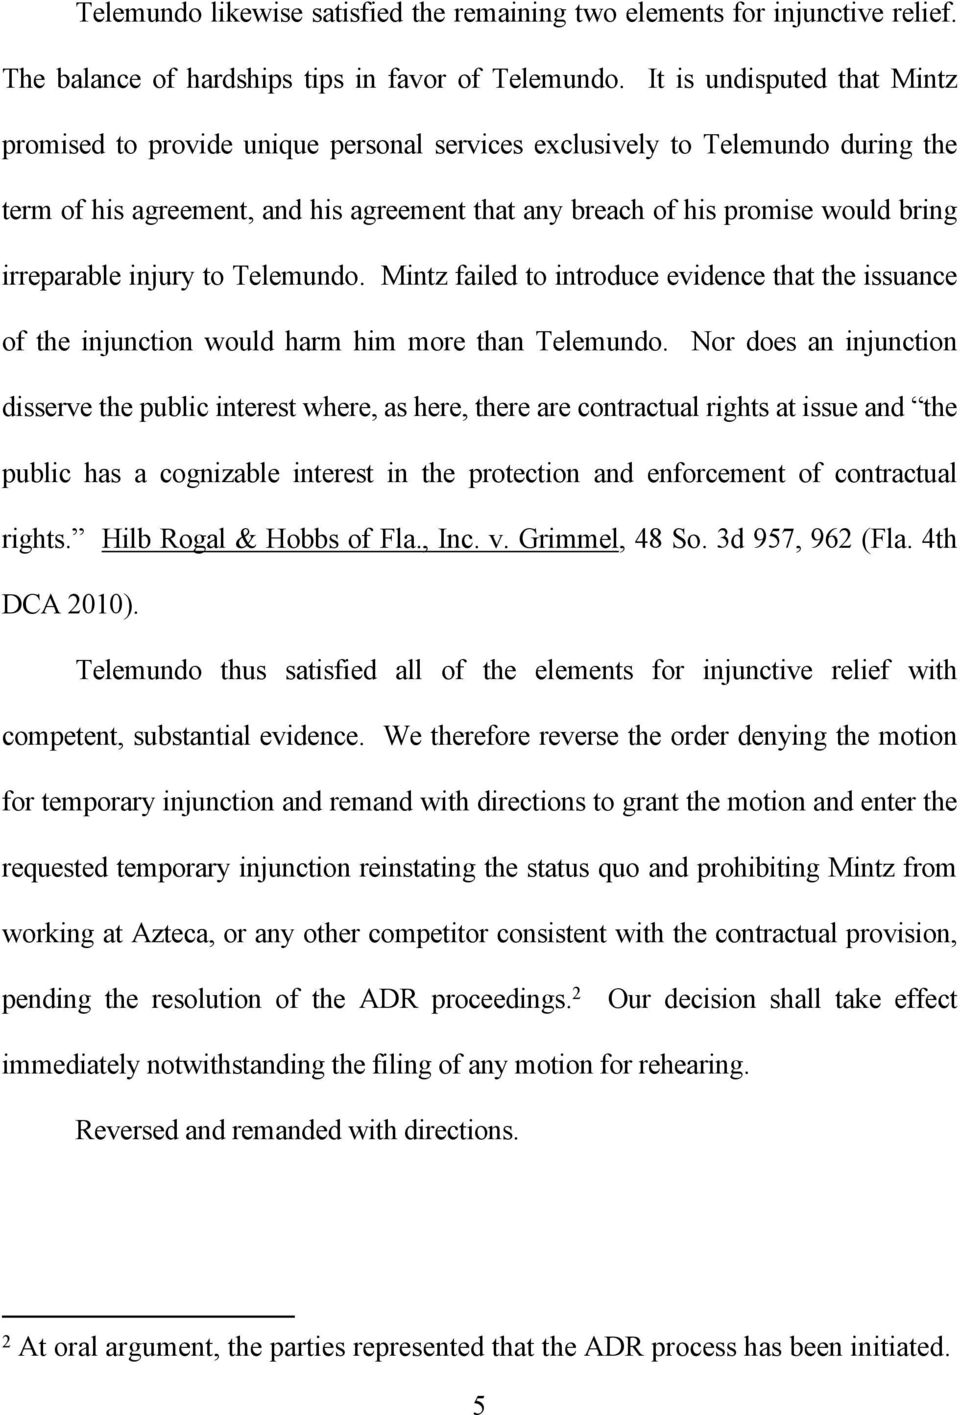 irreparable injury to Telemundo. Mintz failed to introduce evidence that the issuance of the injunction would harm him more than Telemundo.